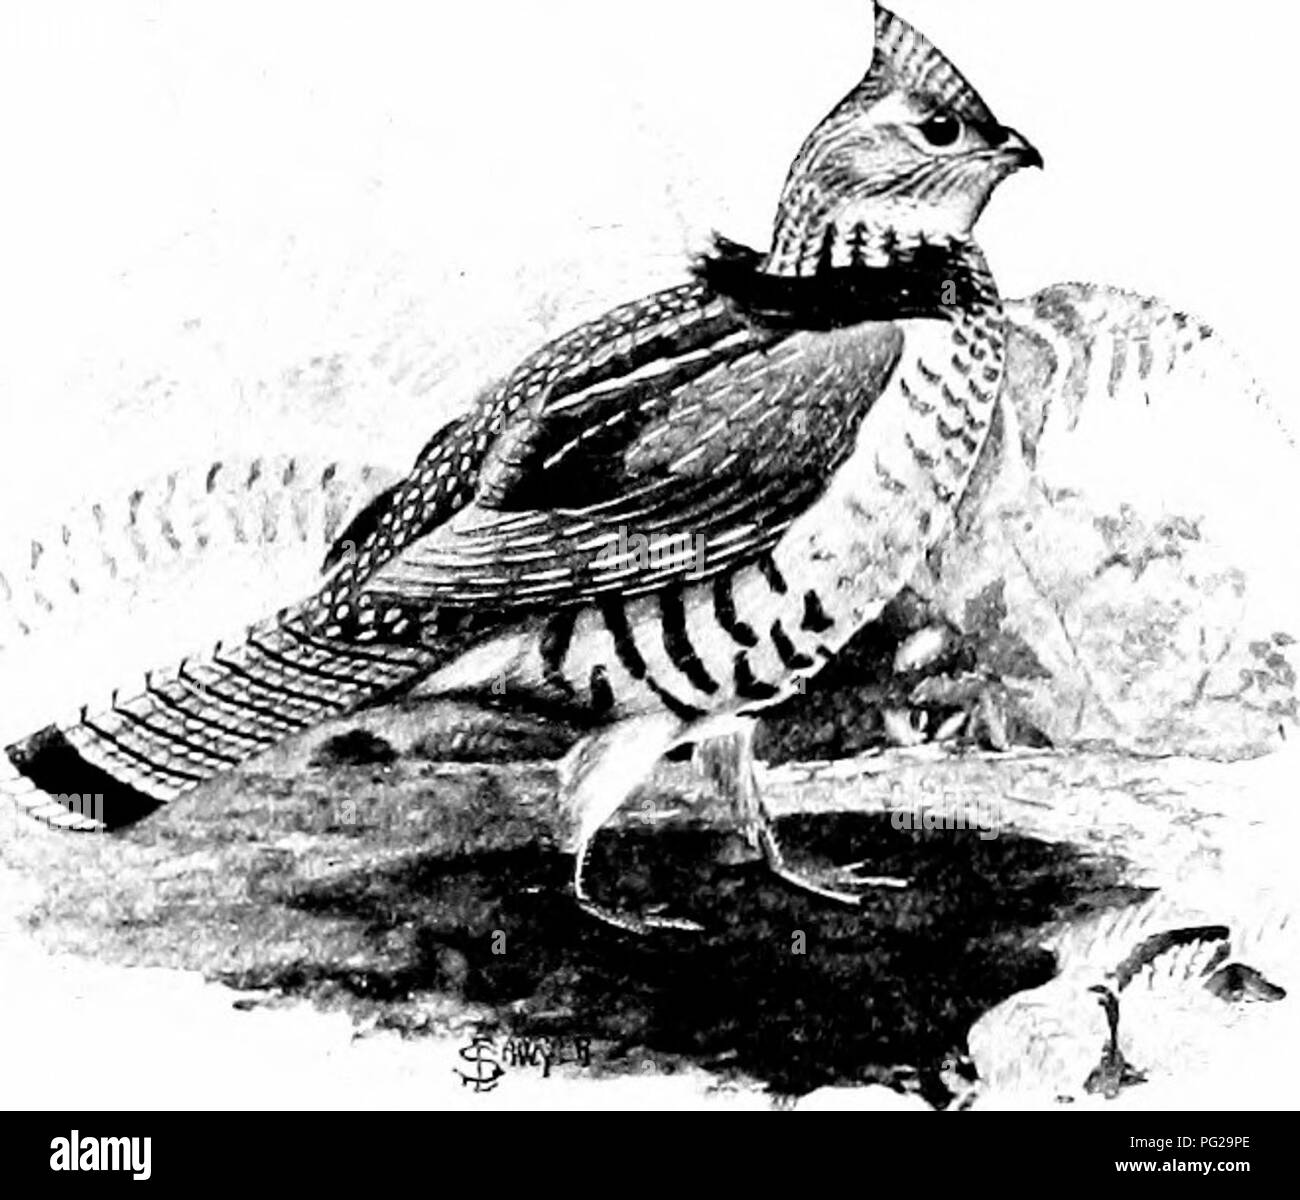 """. The American natural history; a foundation of useful knowledge of the higher animals of North America. Natural history. 2-1:4 ORDEKS OF BIRDS—UPLAND GAME-BIRDS the Ruffed (Irouse should be called Ijy that name, and no other! It is called """"Ruffed"""" because of the ruff of feathers that it wears just in front of its shoulders, and under the name """"Redruff"""" this bird has been most charmingly introduced by Mr. Ernest Thompson i^eton to many thou- sand readers who never had known it previously. This (Jrousc is in every respect a forest-bird. Its ideal homo is mixed forest of hard - Stock Image"""